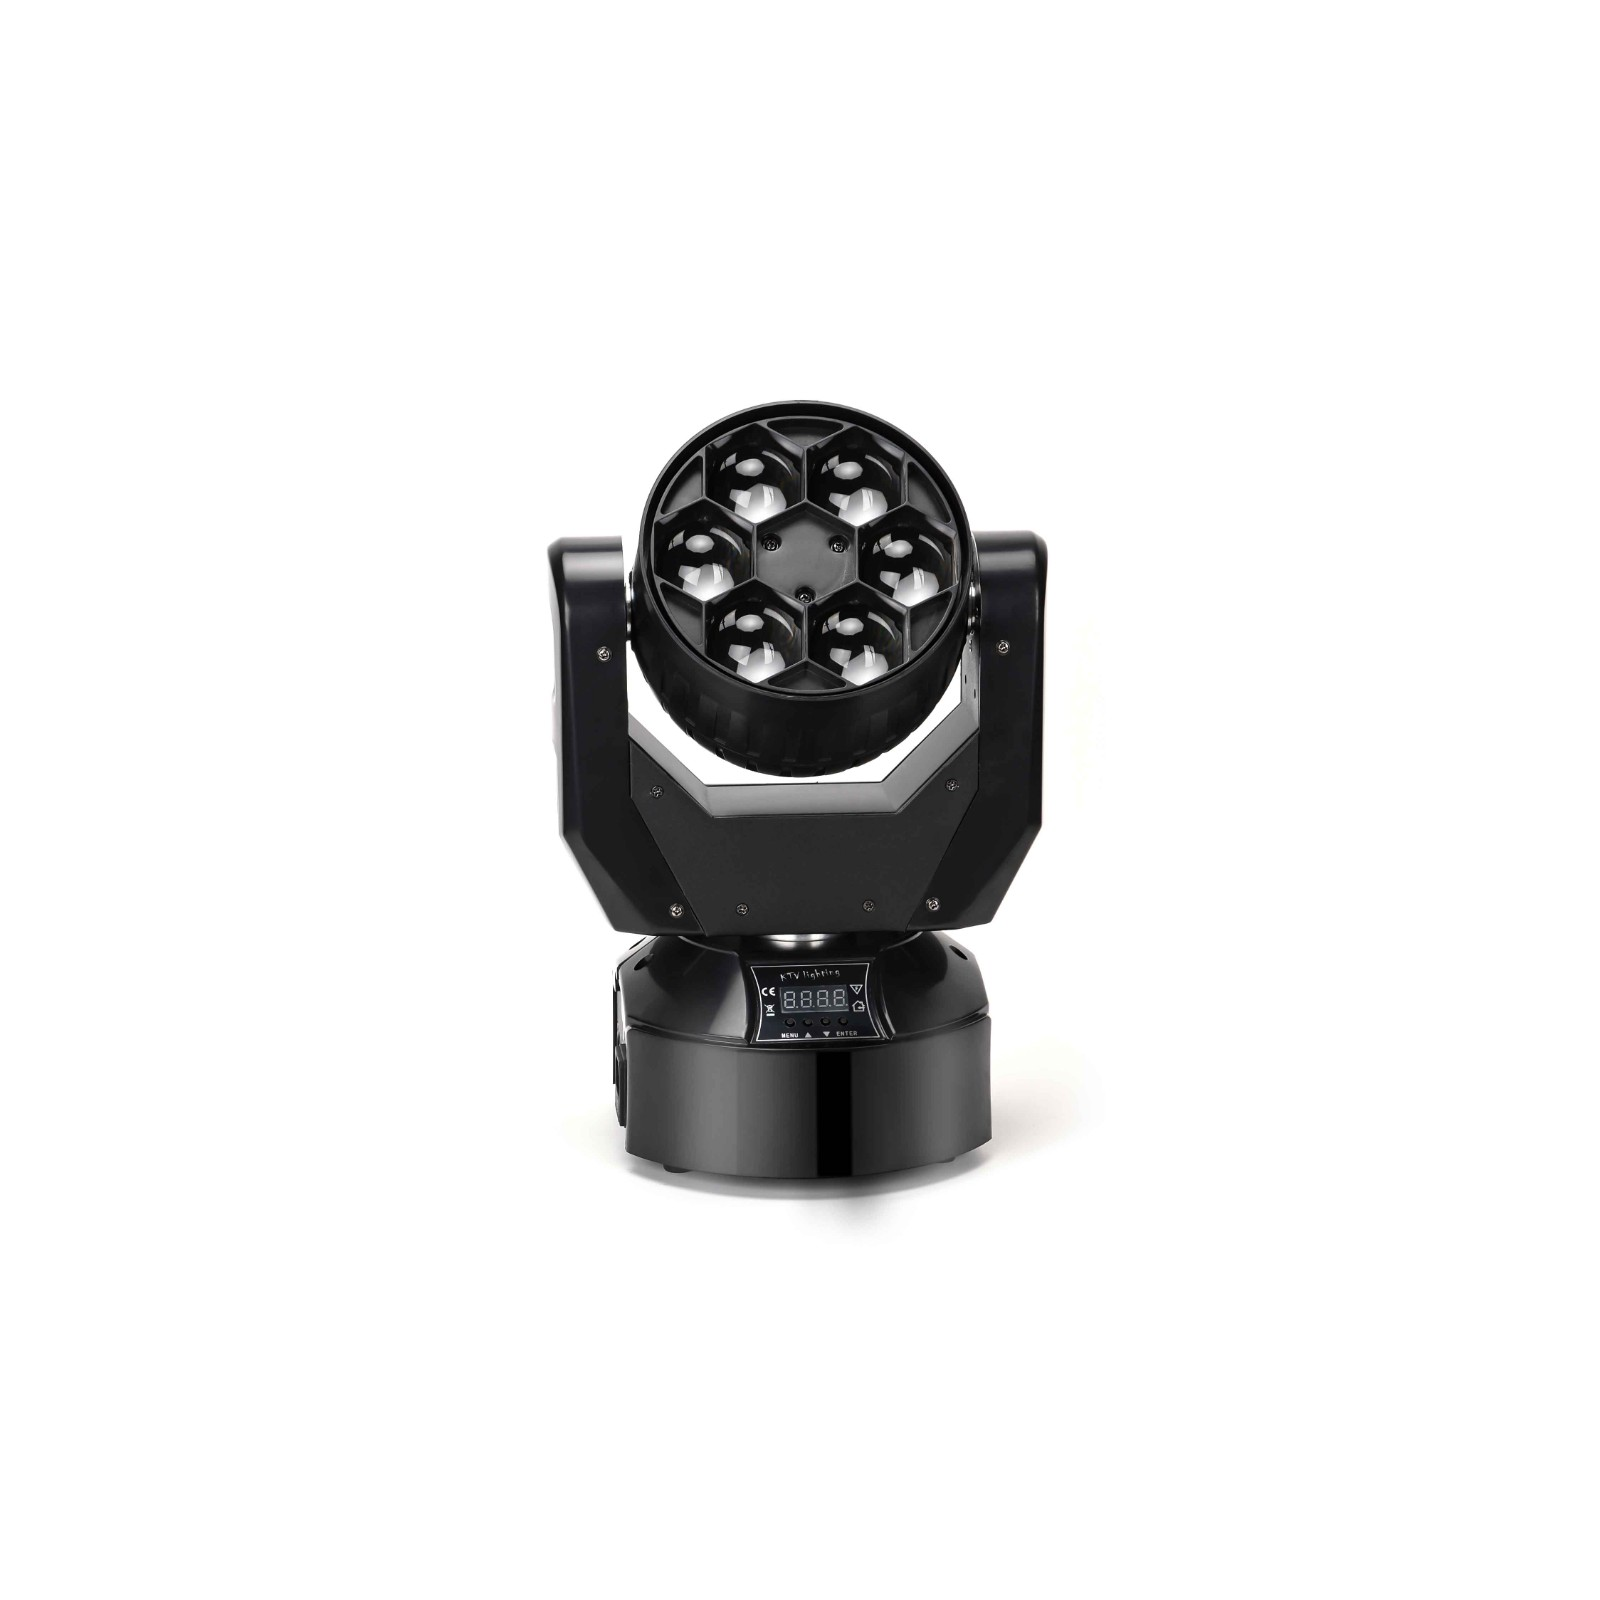 6*15w rgbw 4 in 1 big bee eye led moving head light